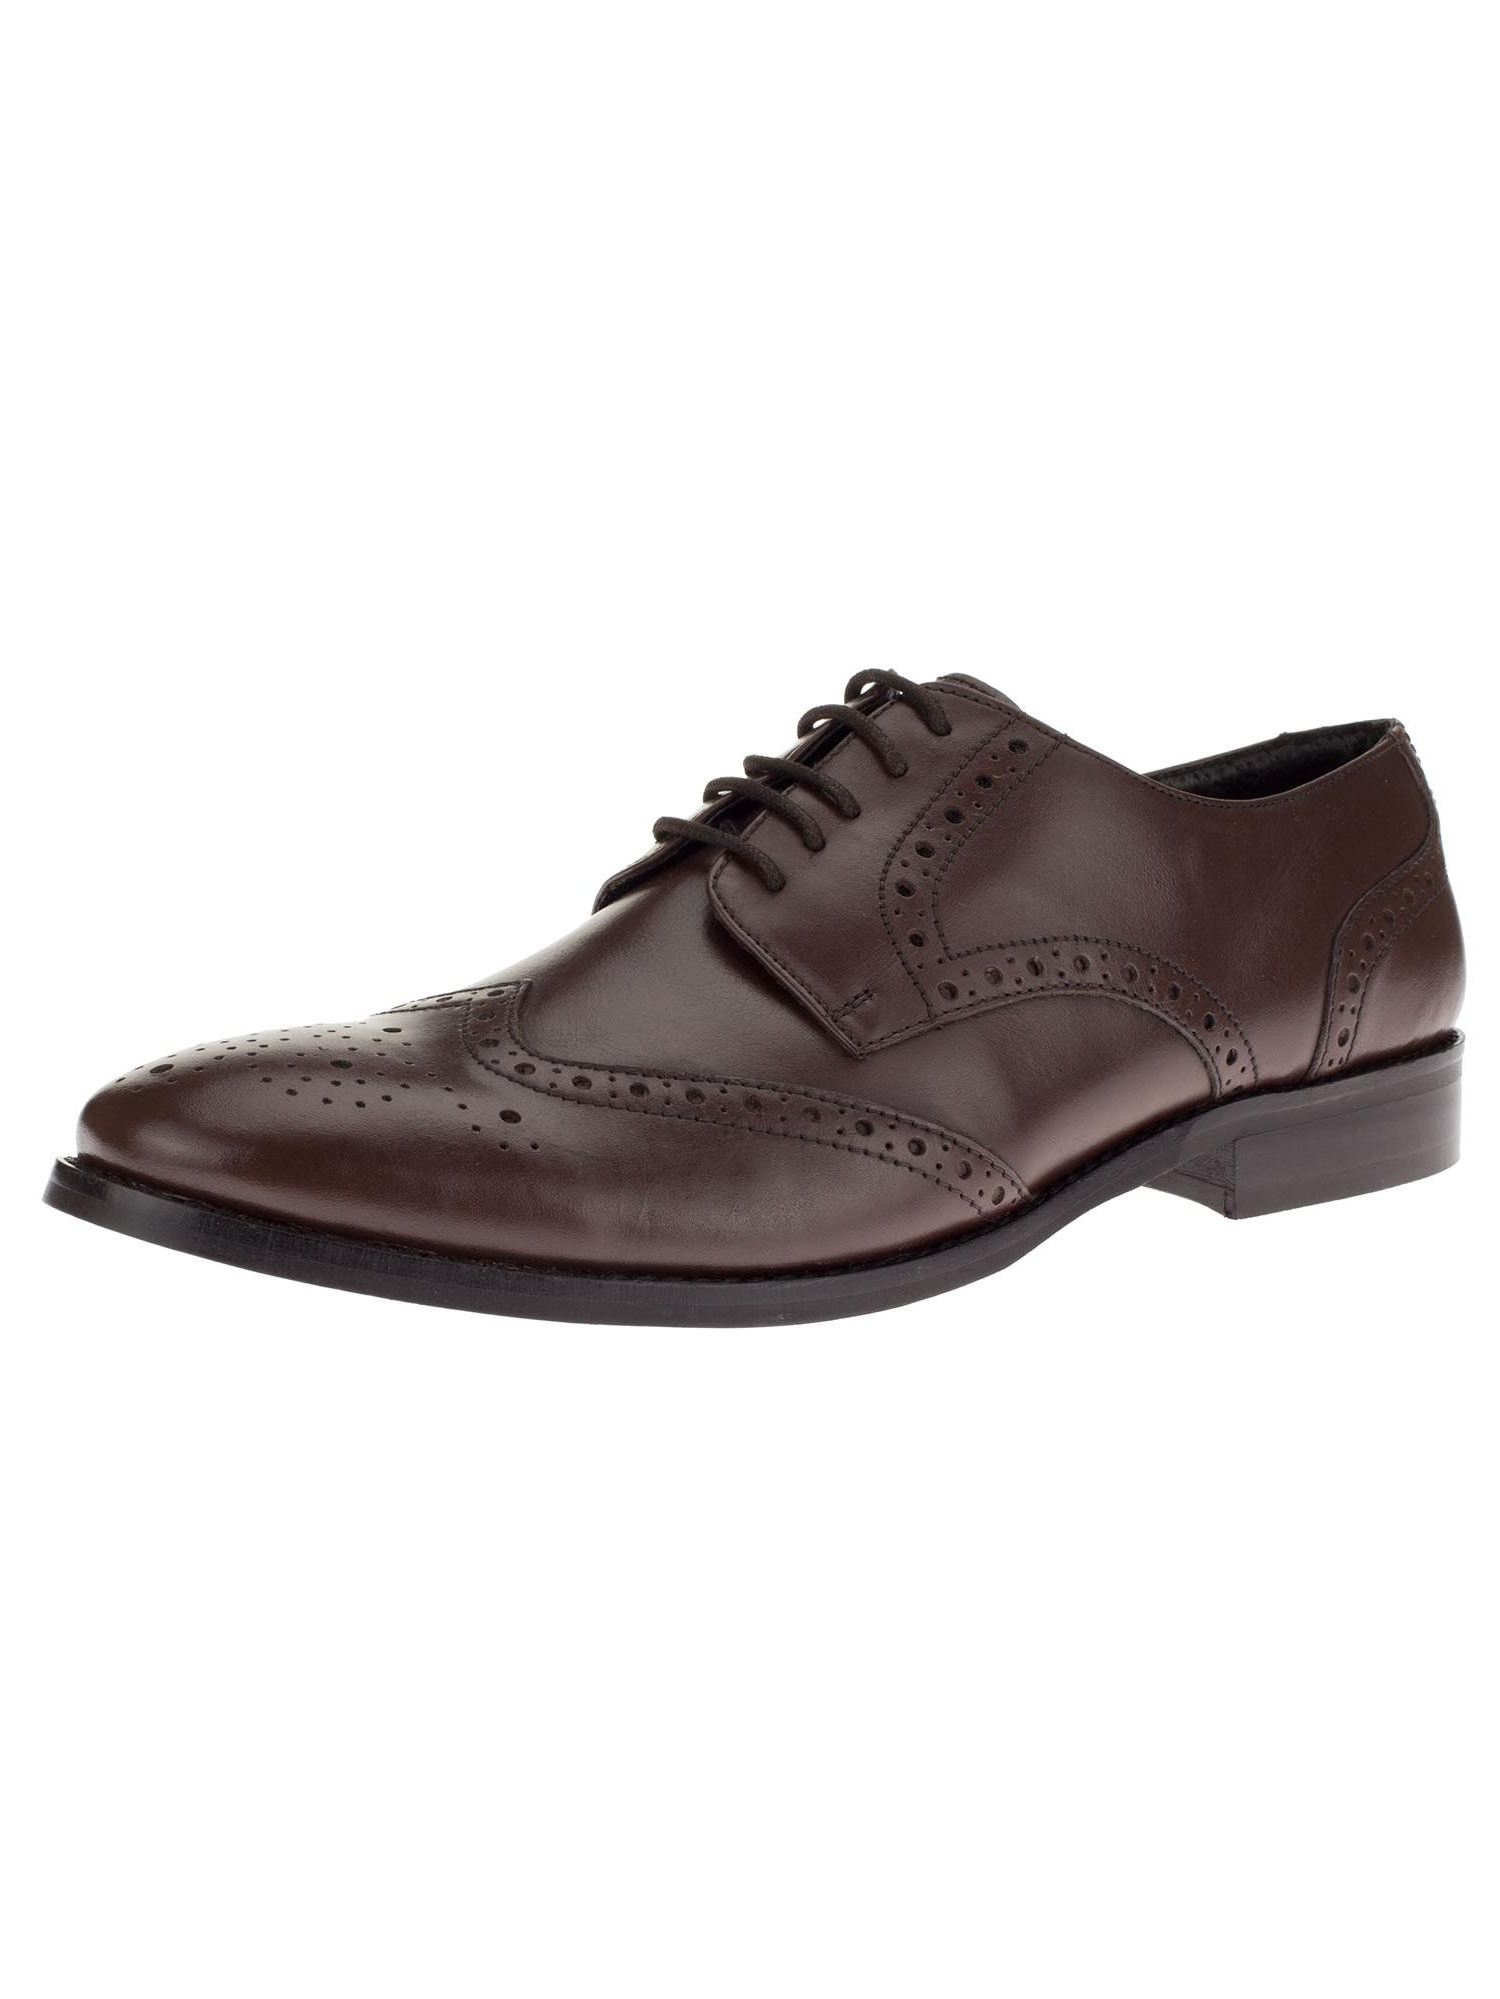 Gino Valentino Men's Leather Dress Shoe Lace-Up Tyson Wingtip Oxford